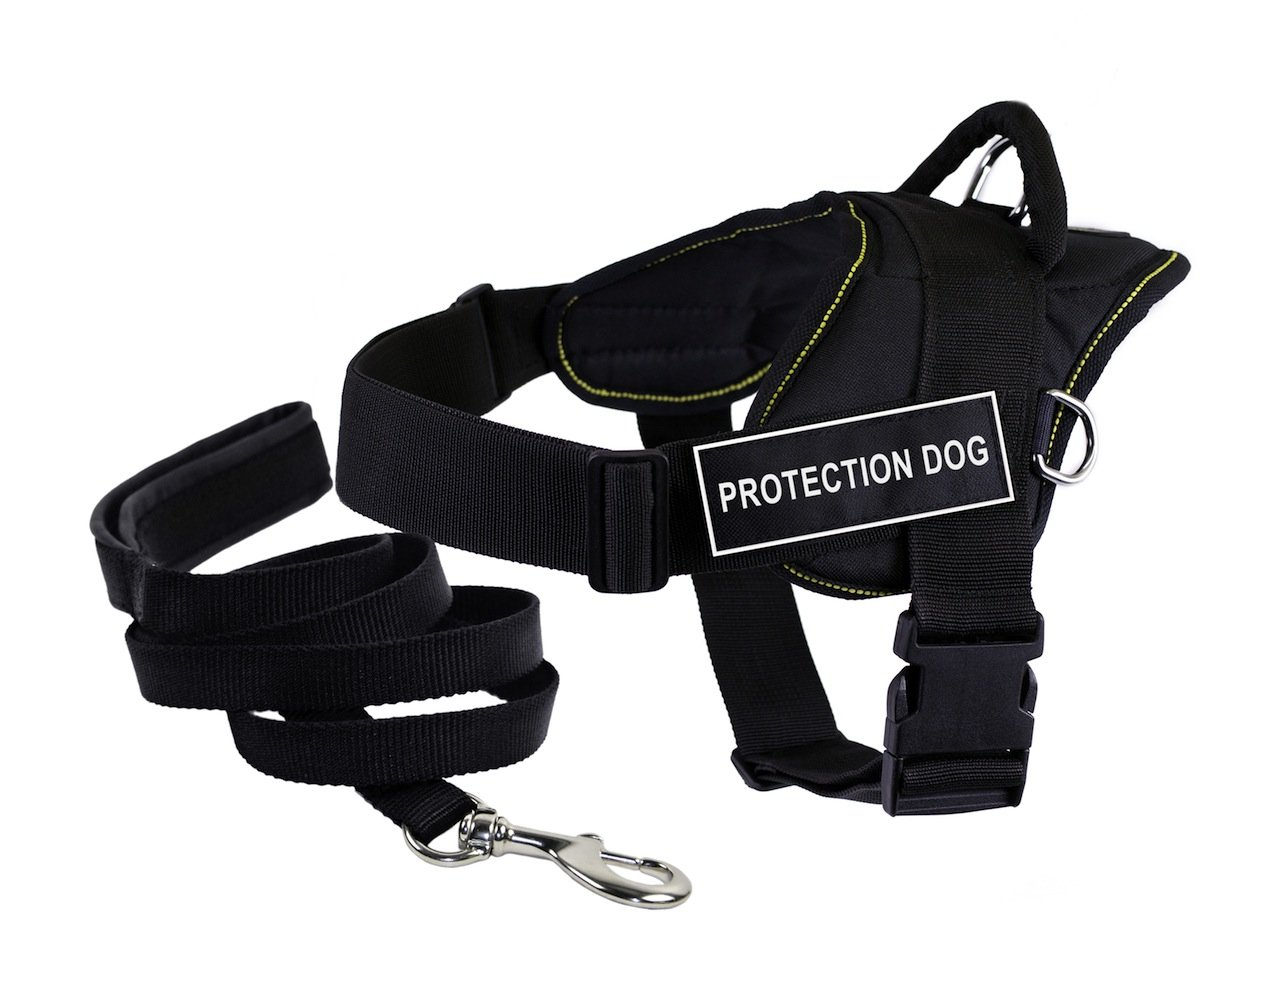 Dean & Tyler's DT Fun PredECTION DOG Harness, Medium, with 6 ft Padded Puppy Leash.